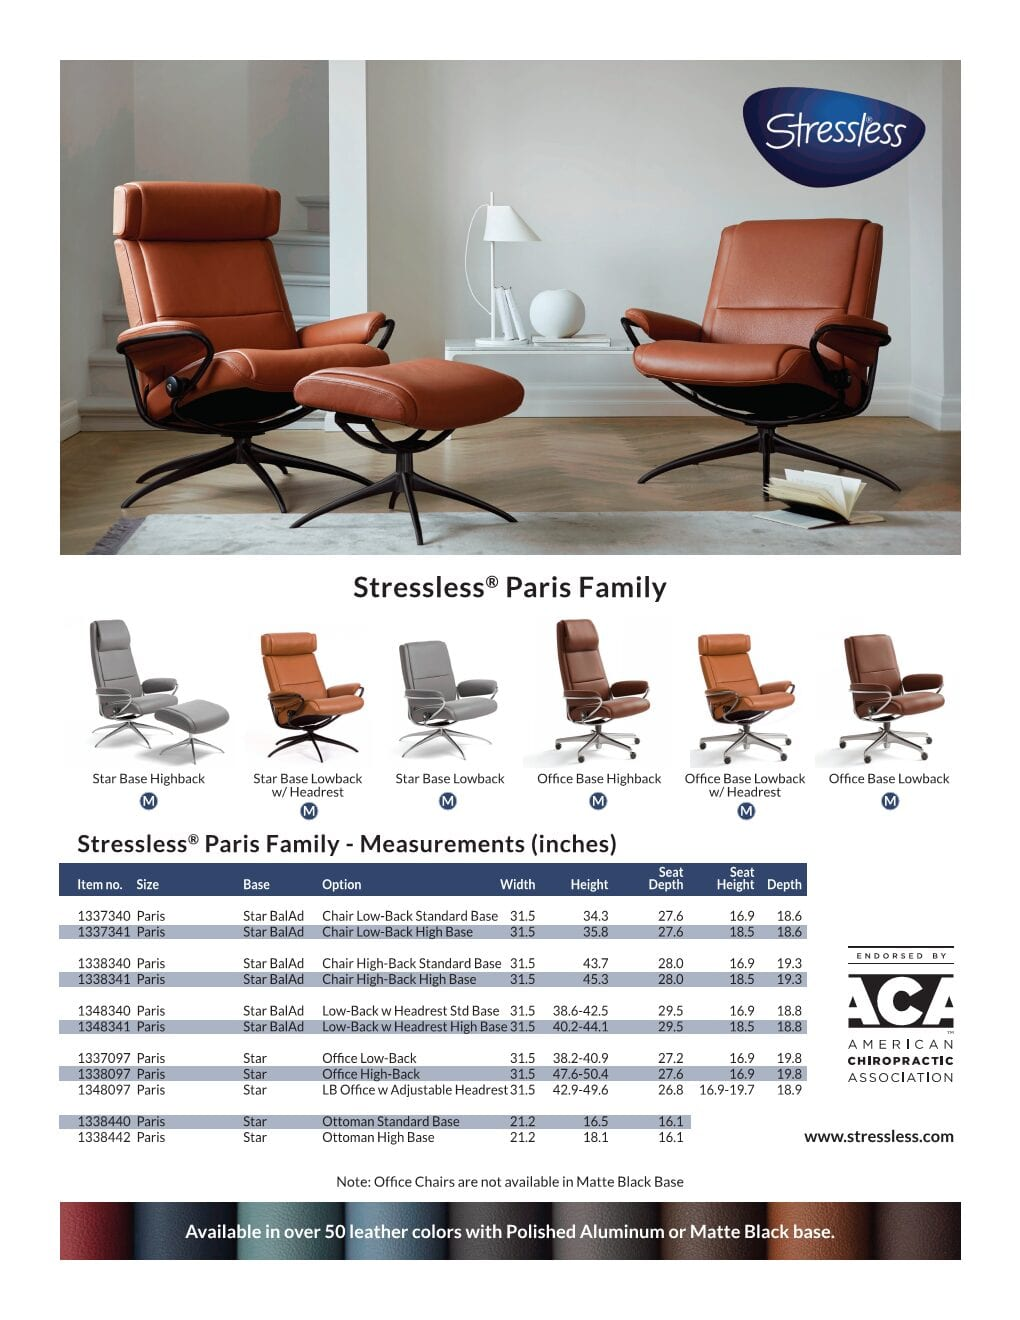 Paris Product Sheet from Stressless